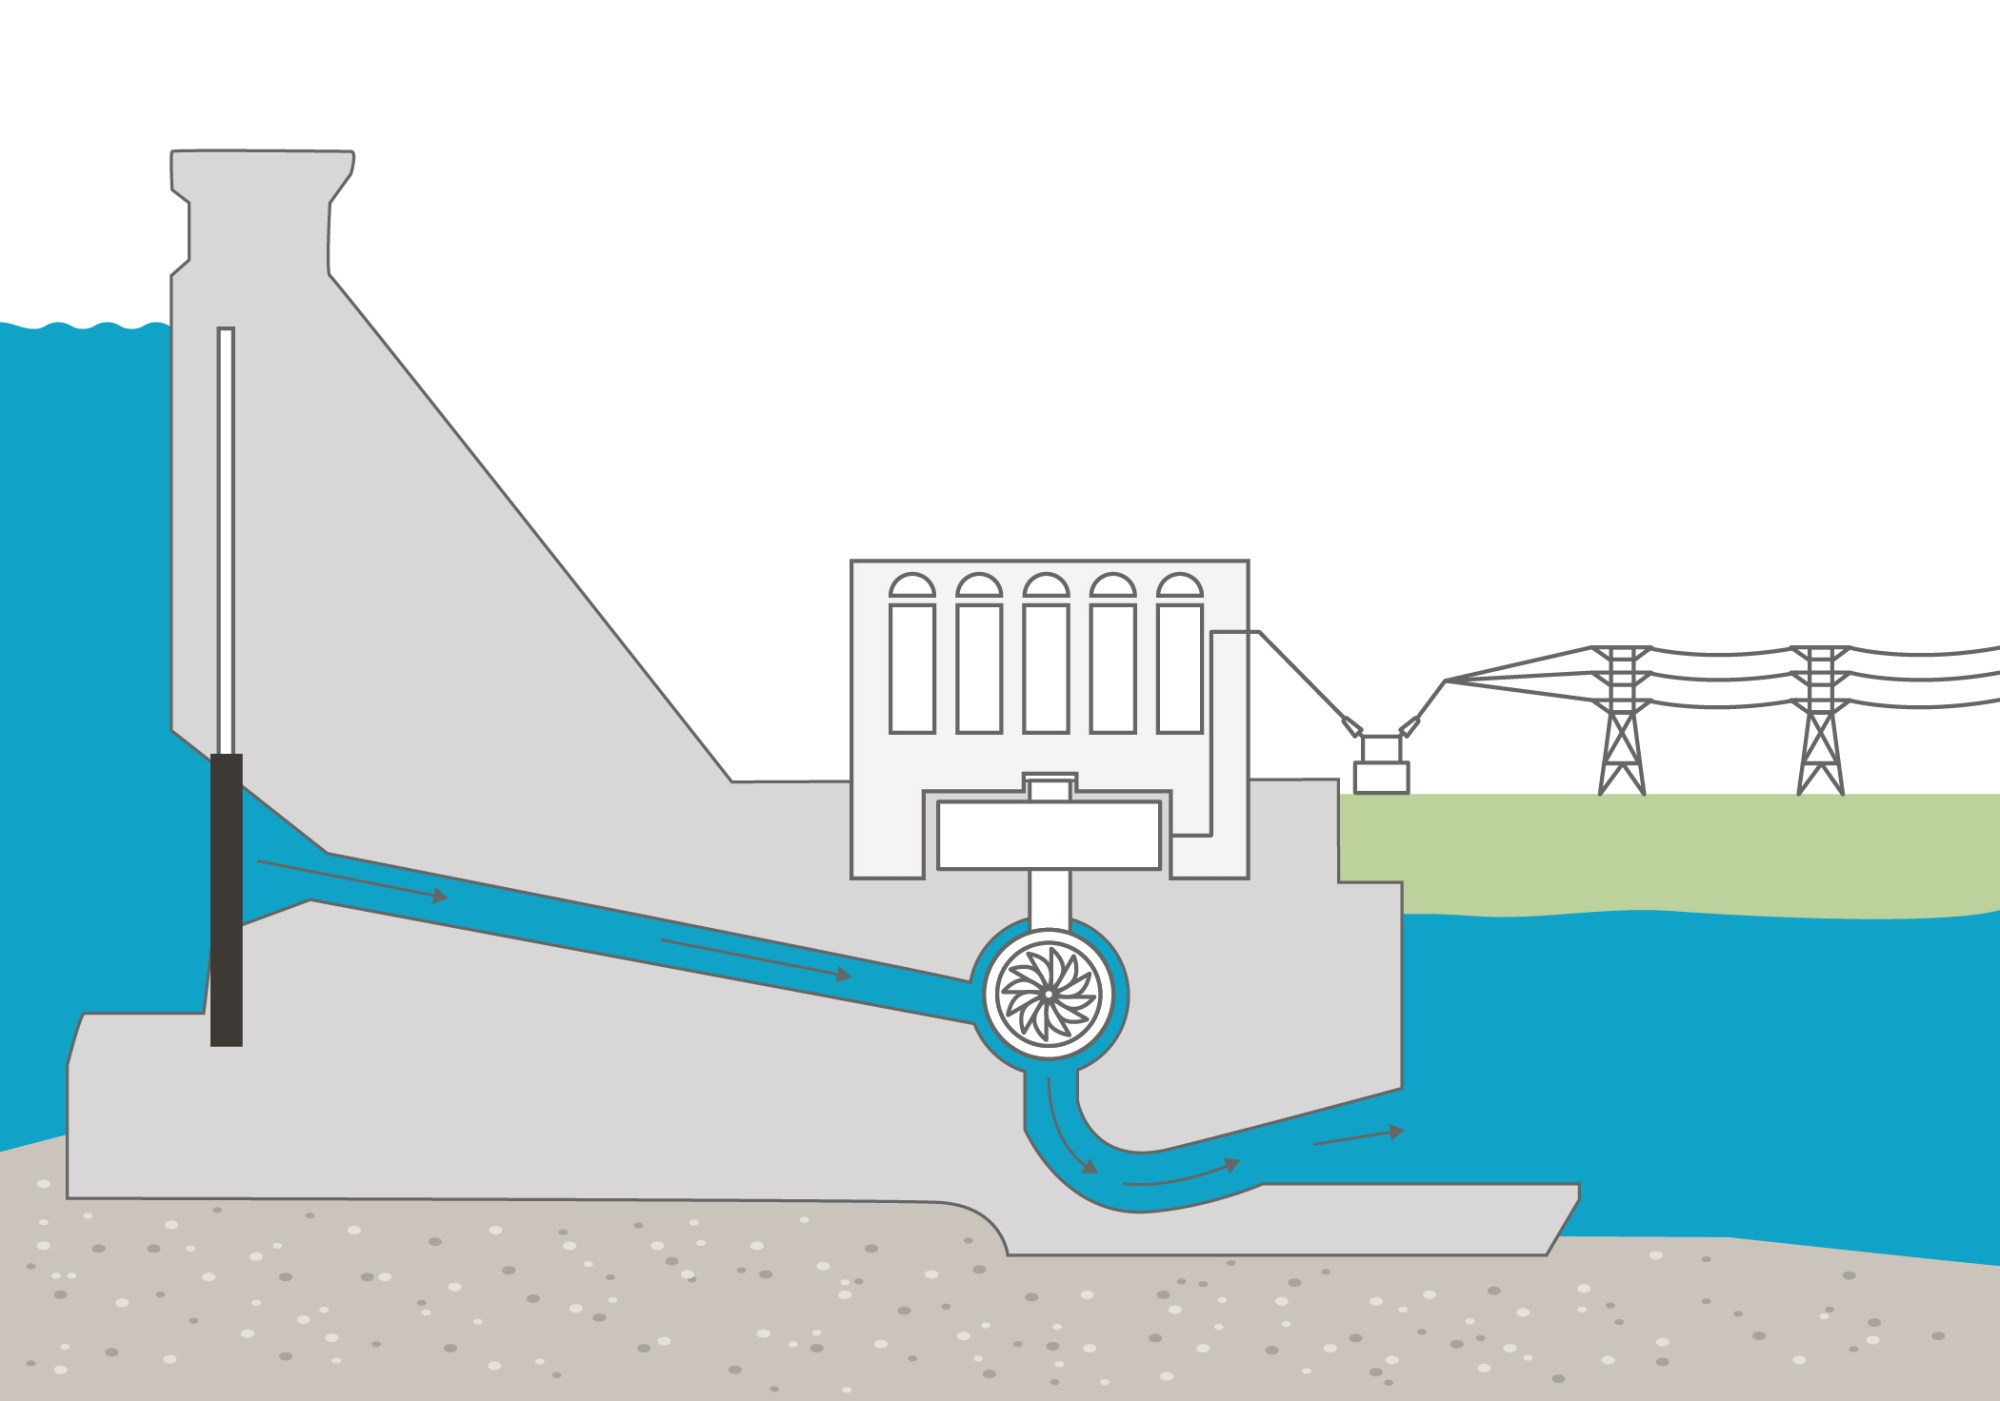 hight resolution of how a dam works bchydro power smart for schools diagram of hydroelectric dam and powerhouse diagram of hydro dam